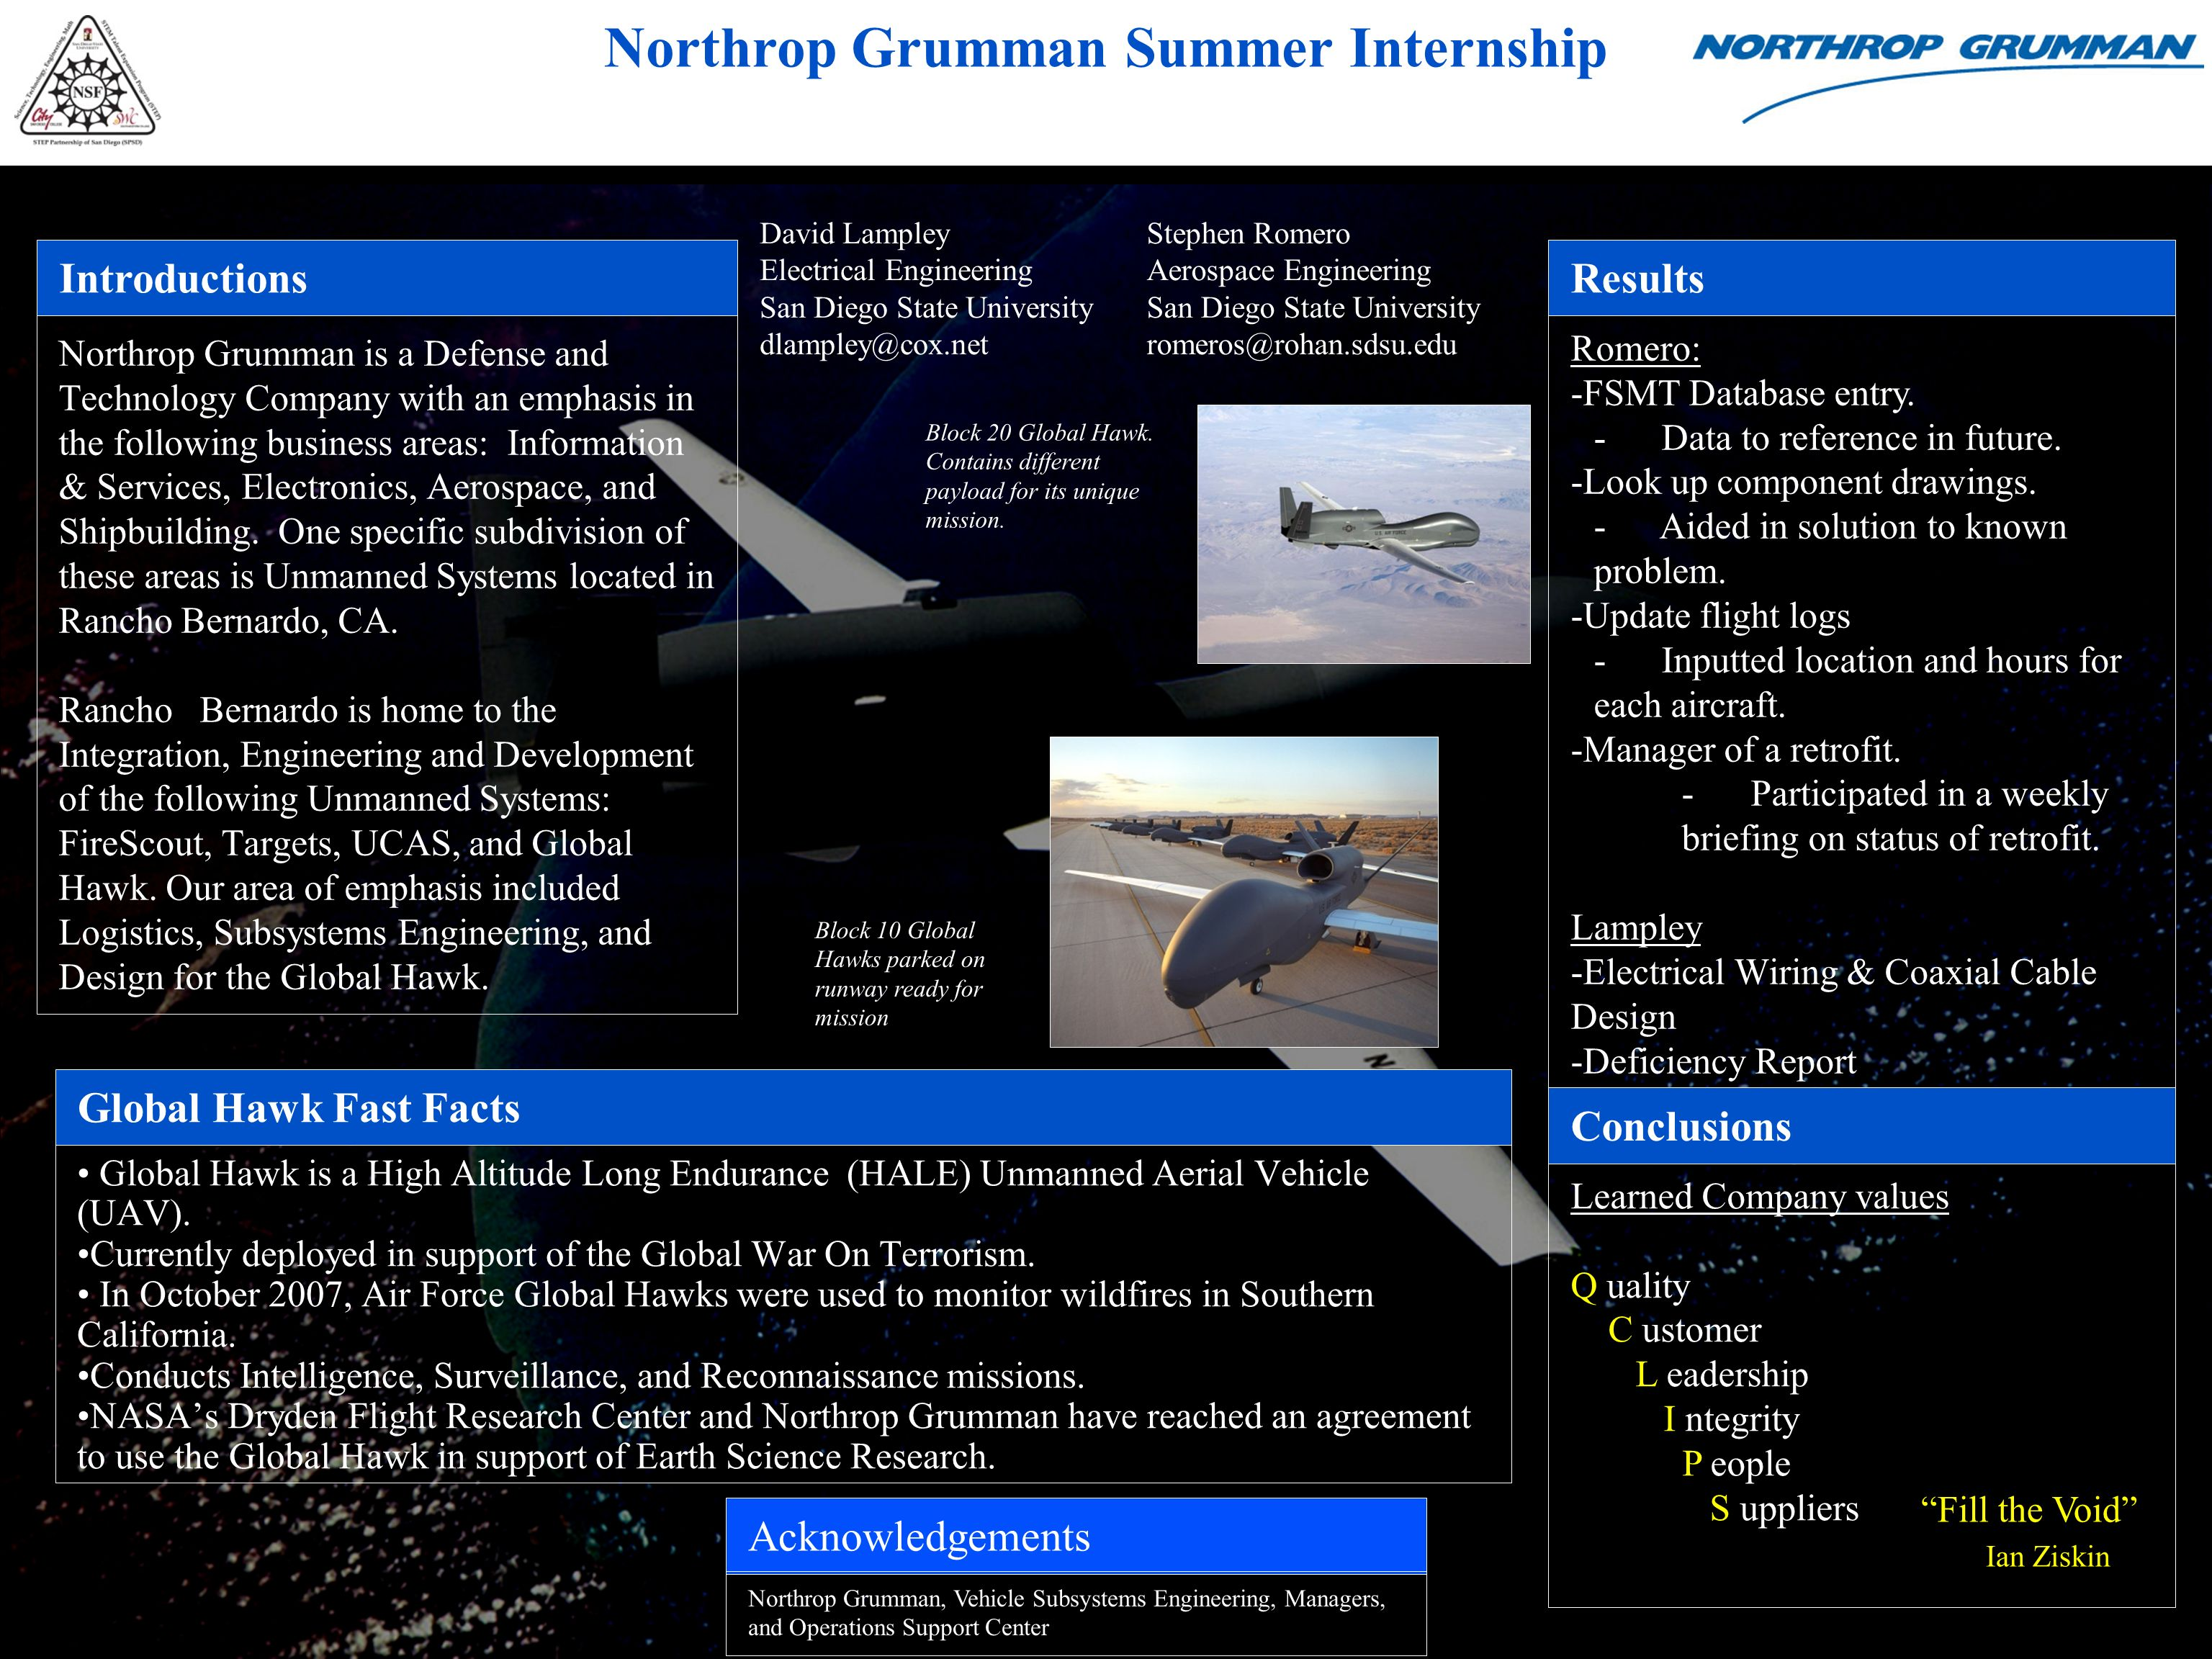 Northrop Grumman Summer Internship